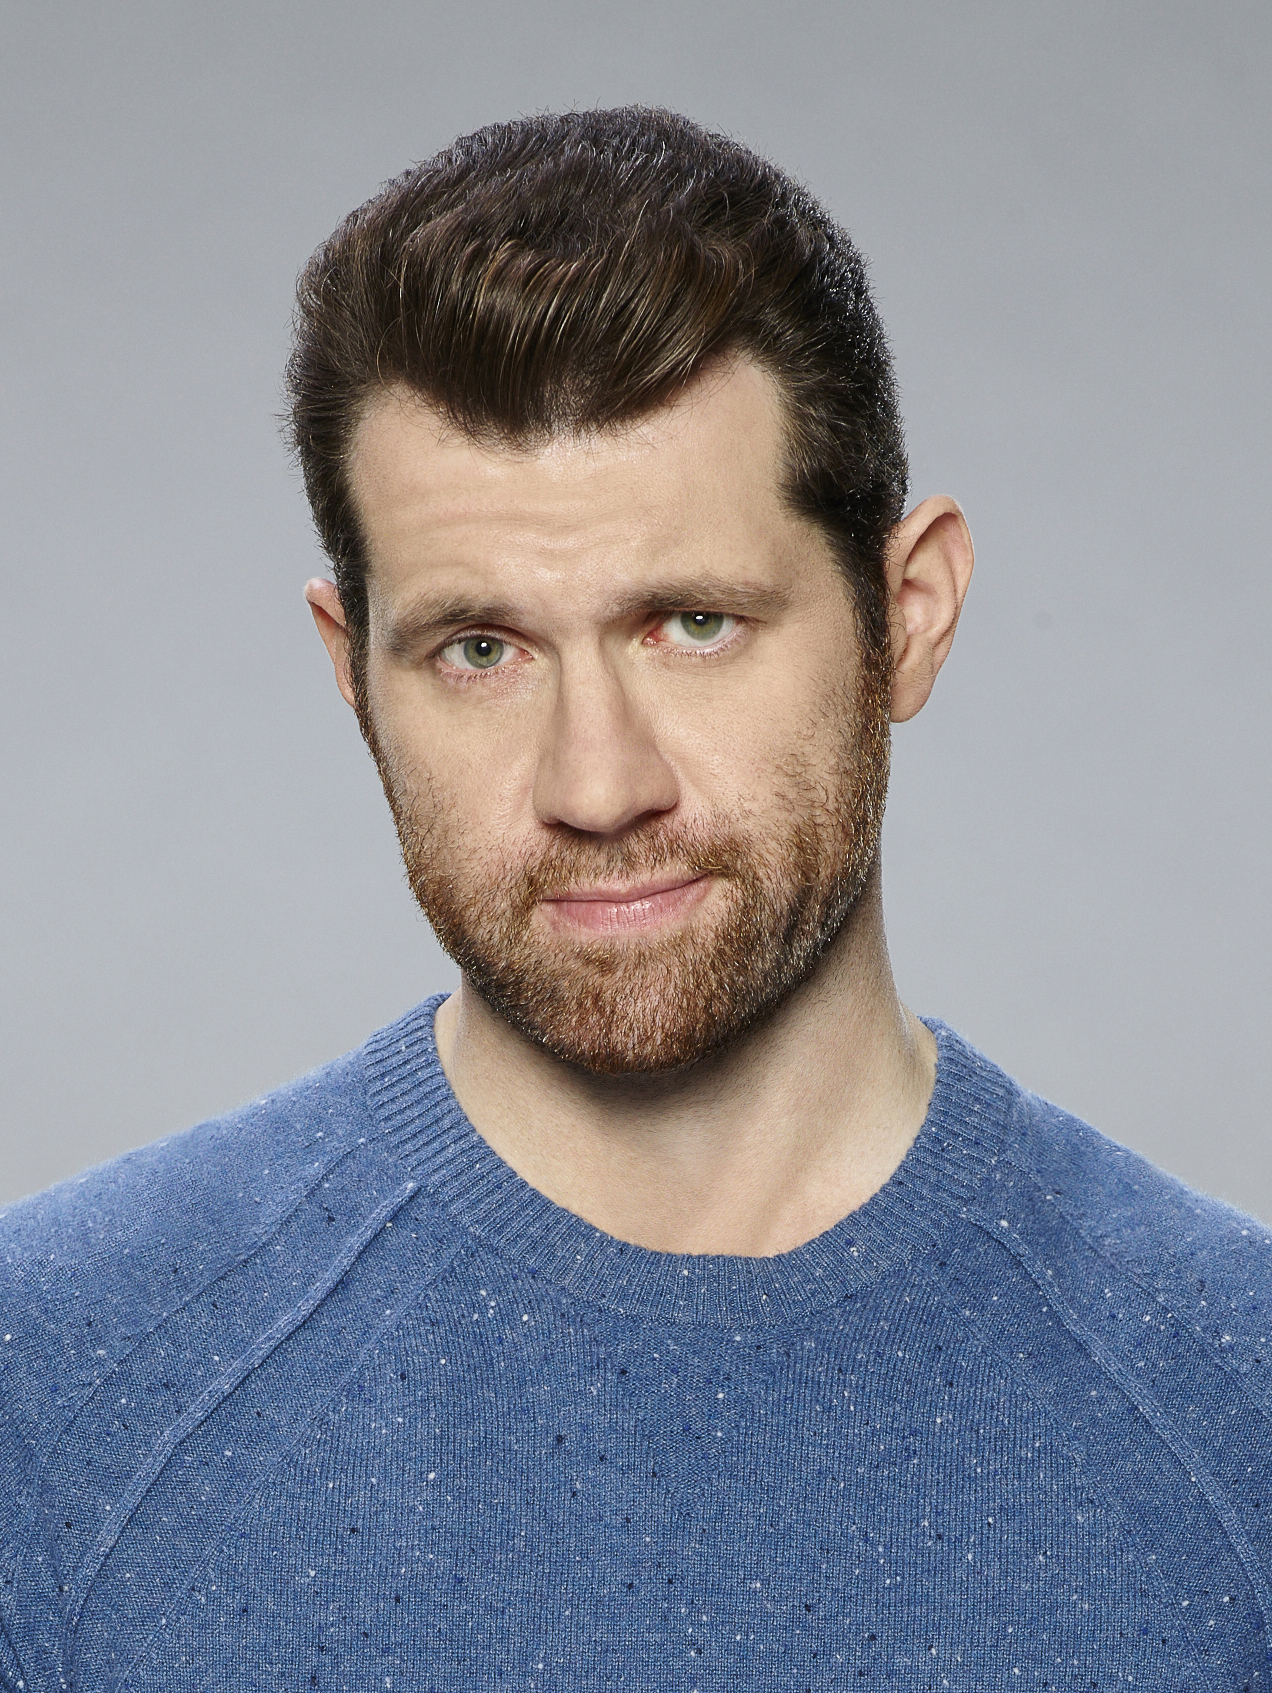 Who Is Billy Eichner Boyfriend? Bio Reveals: Relationship Status, Net Worth, Age, And Height!